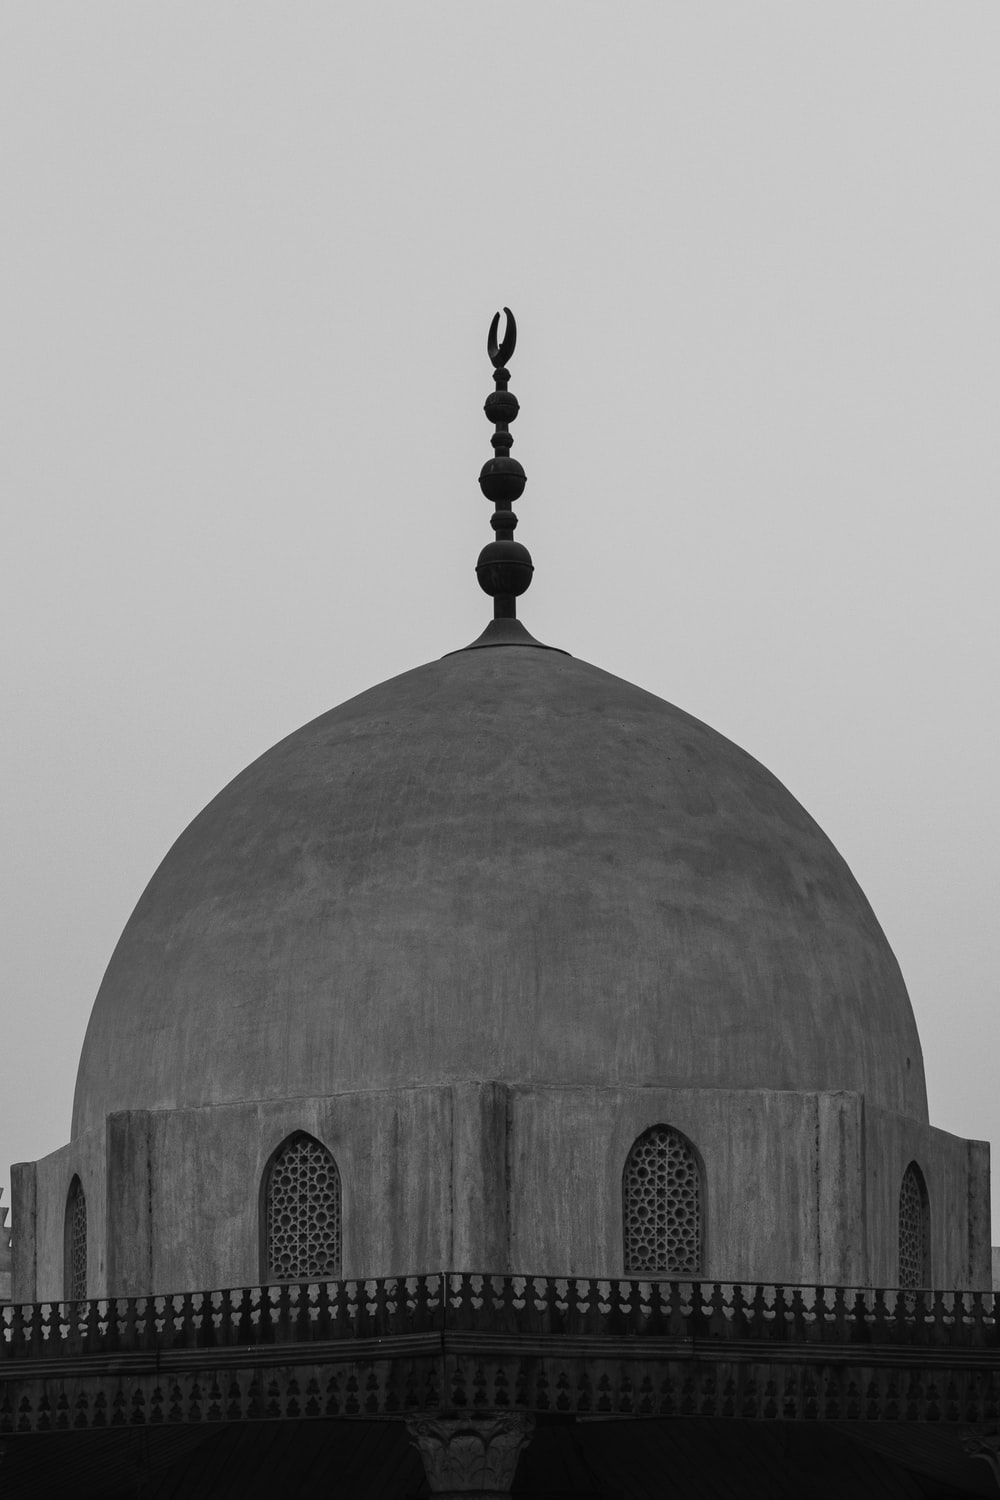 gray and brown dome building